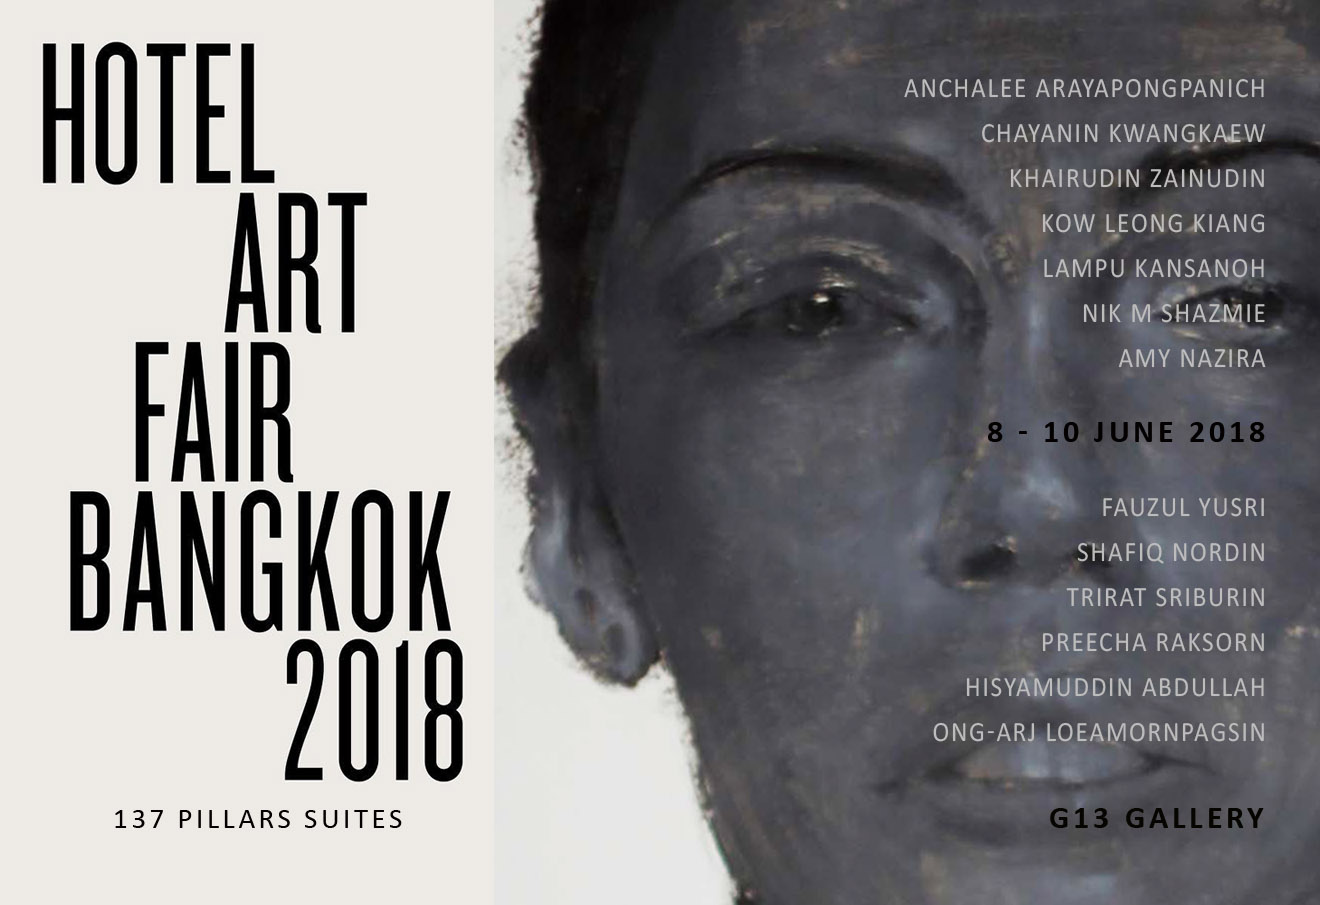 HOTEL ART FAIR BANGKOK 2018